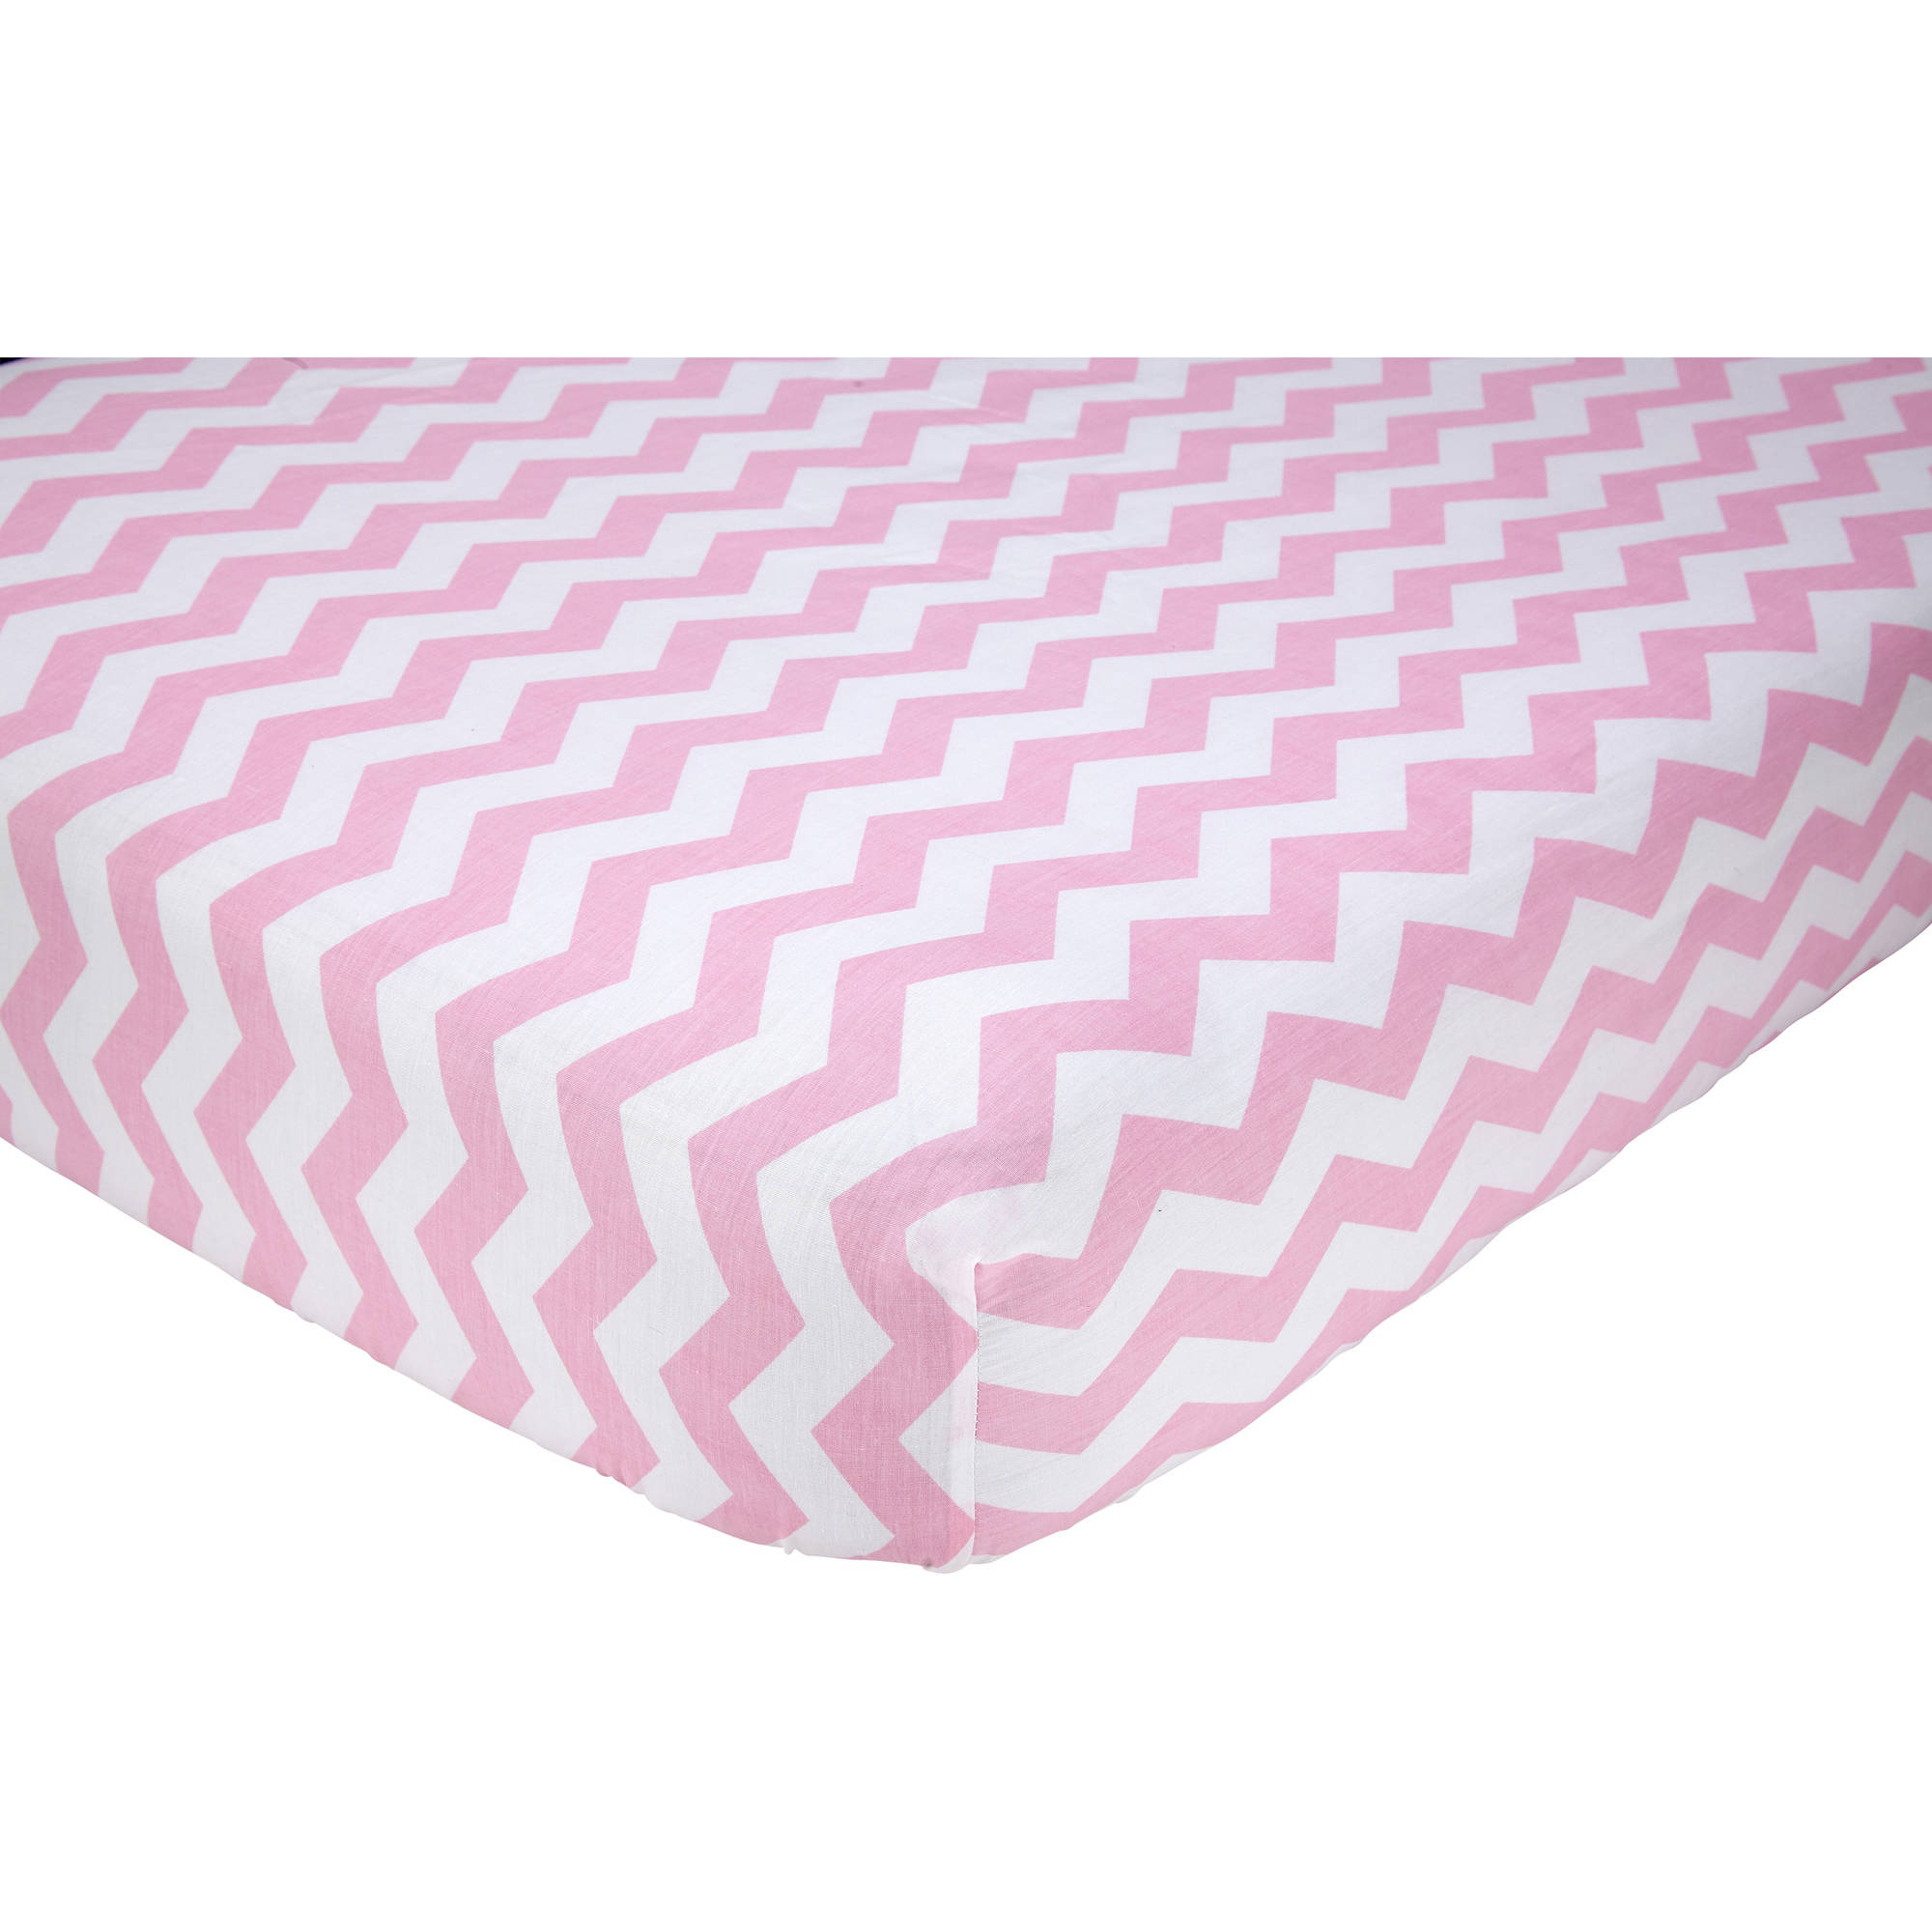 Little Love Chevron Crib Sheet, Pink/White